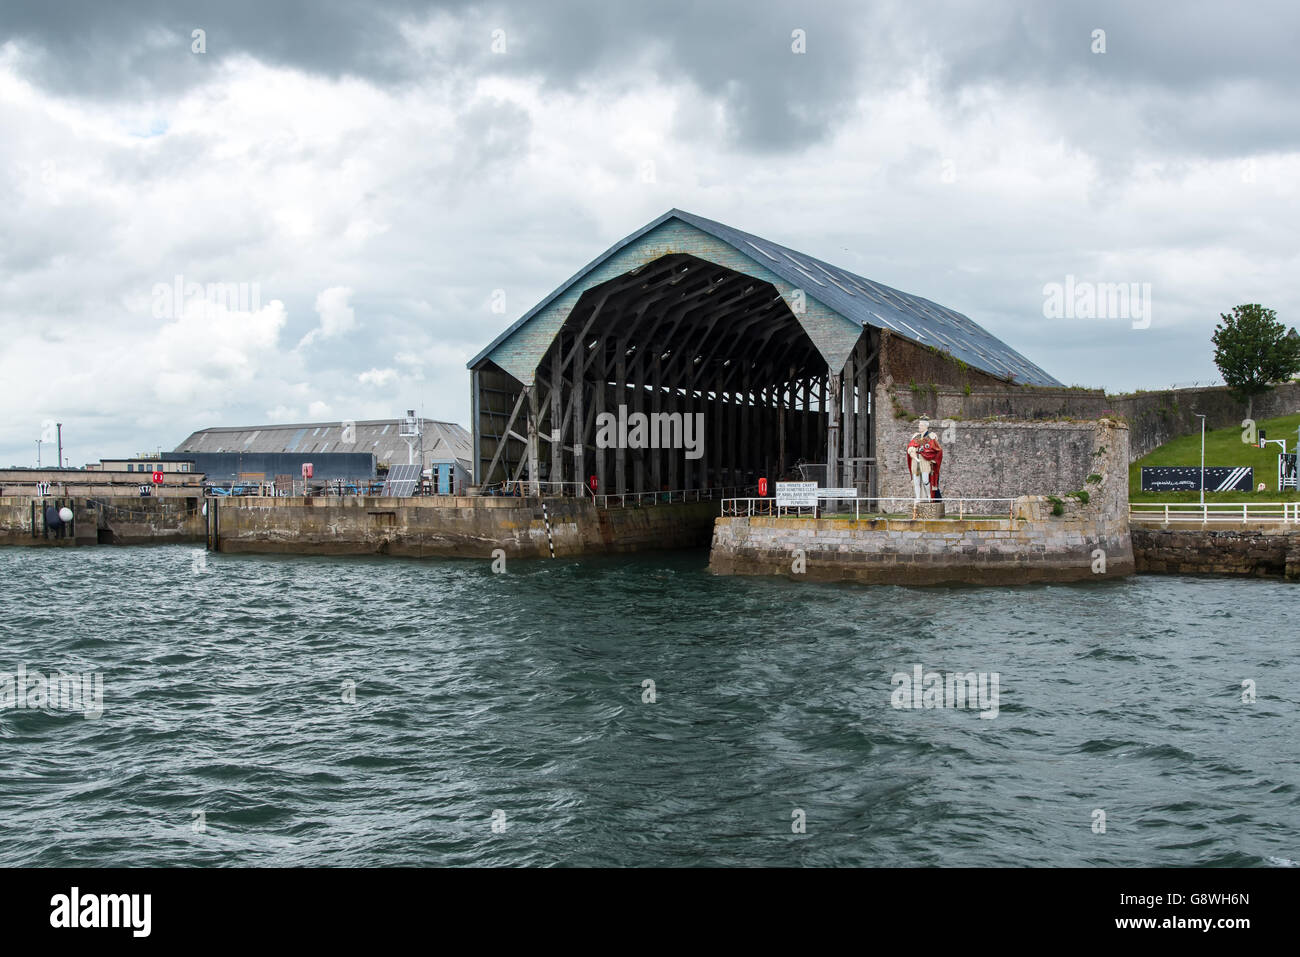 Covered Slip Number 1 at Devonport South Yard, Plymouth, is the oldest remaining covered slipway in any Royal Naval - Stock Image